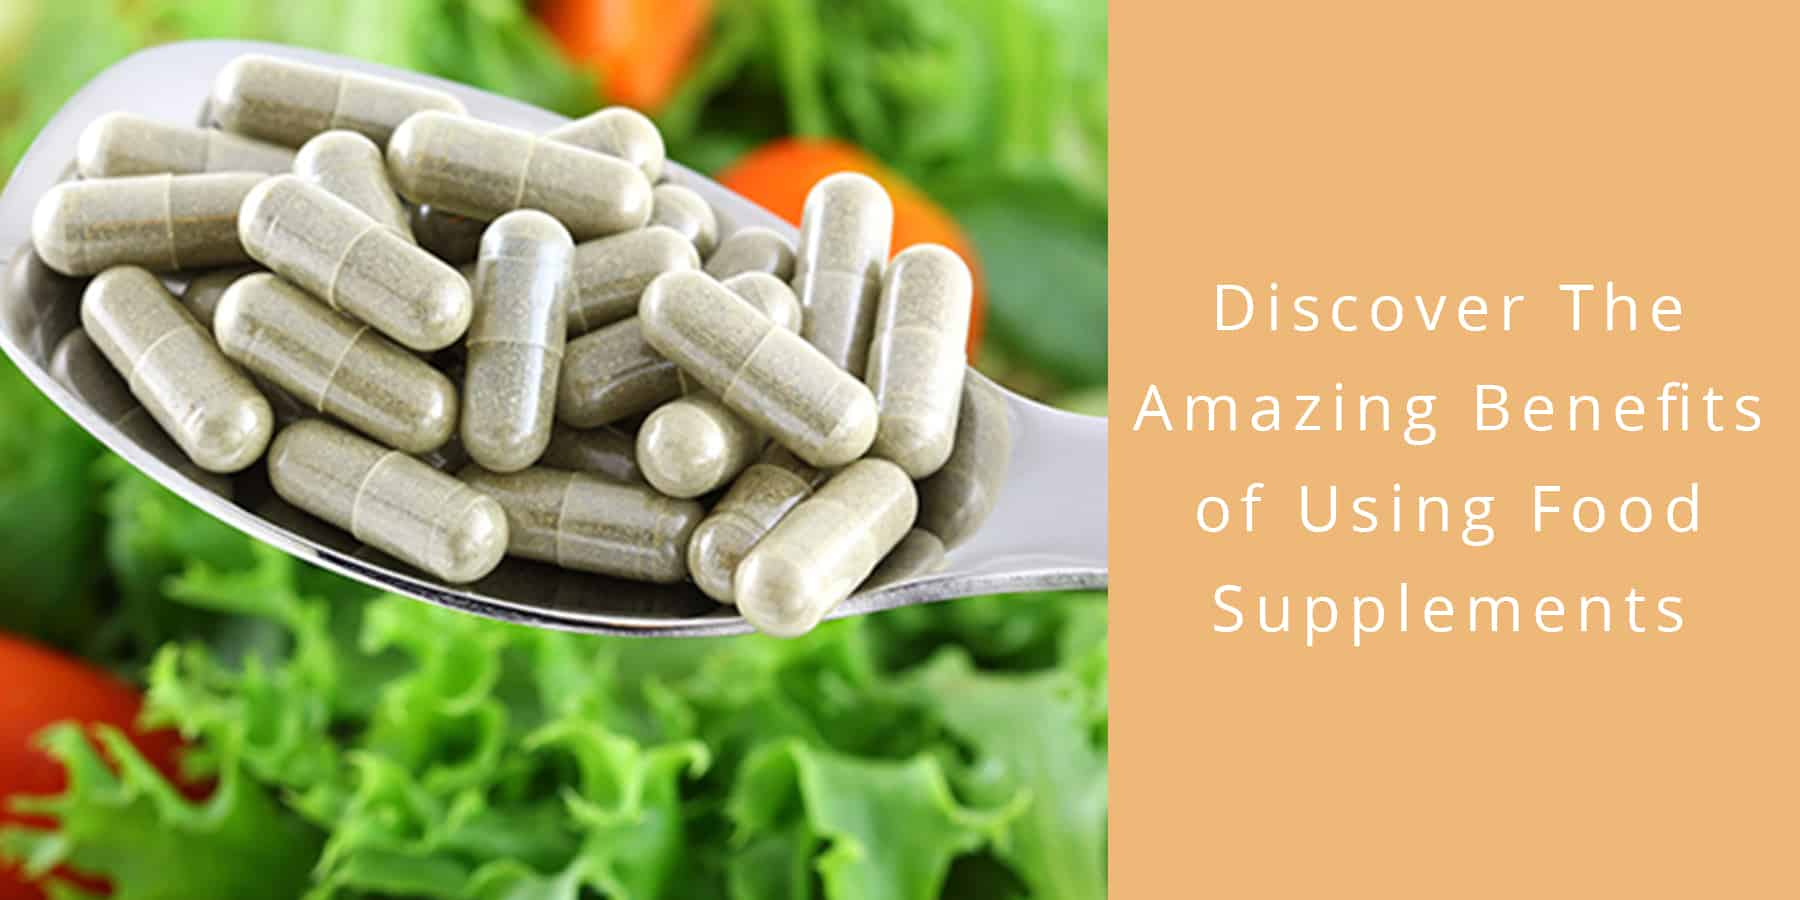 Discover The Amazing Benefits of Using Food Supplements